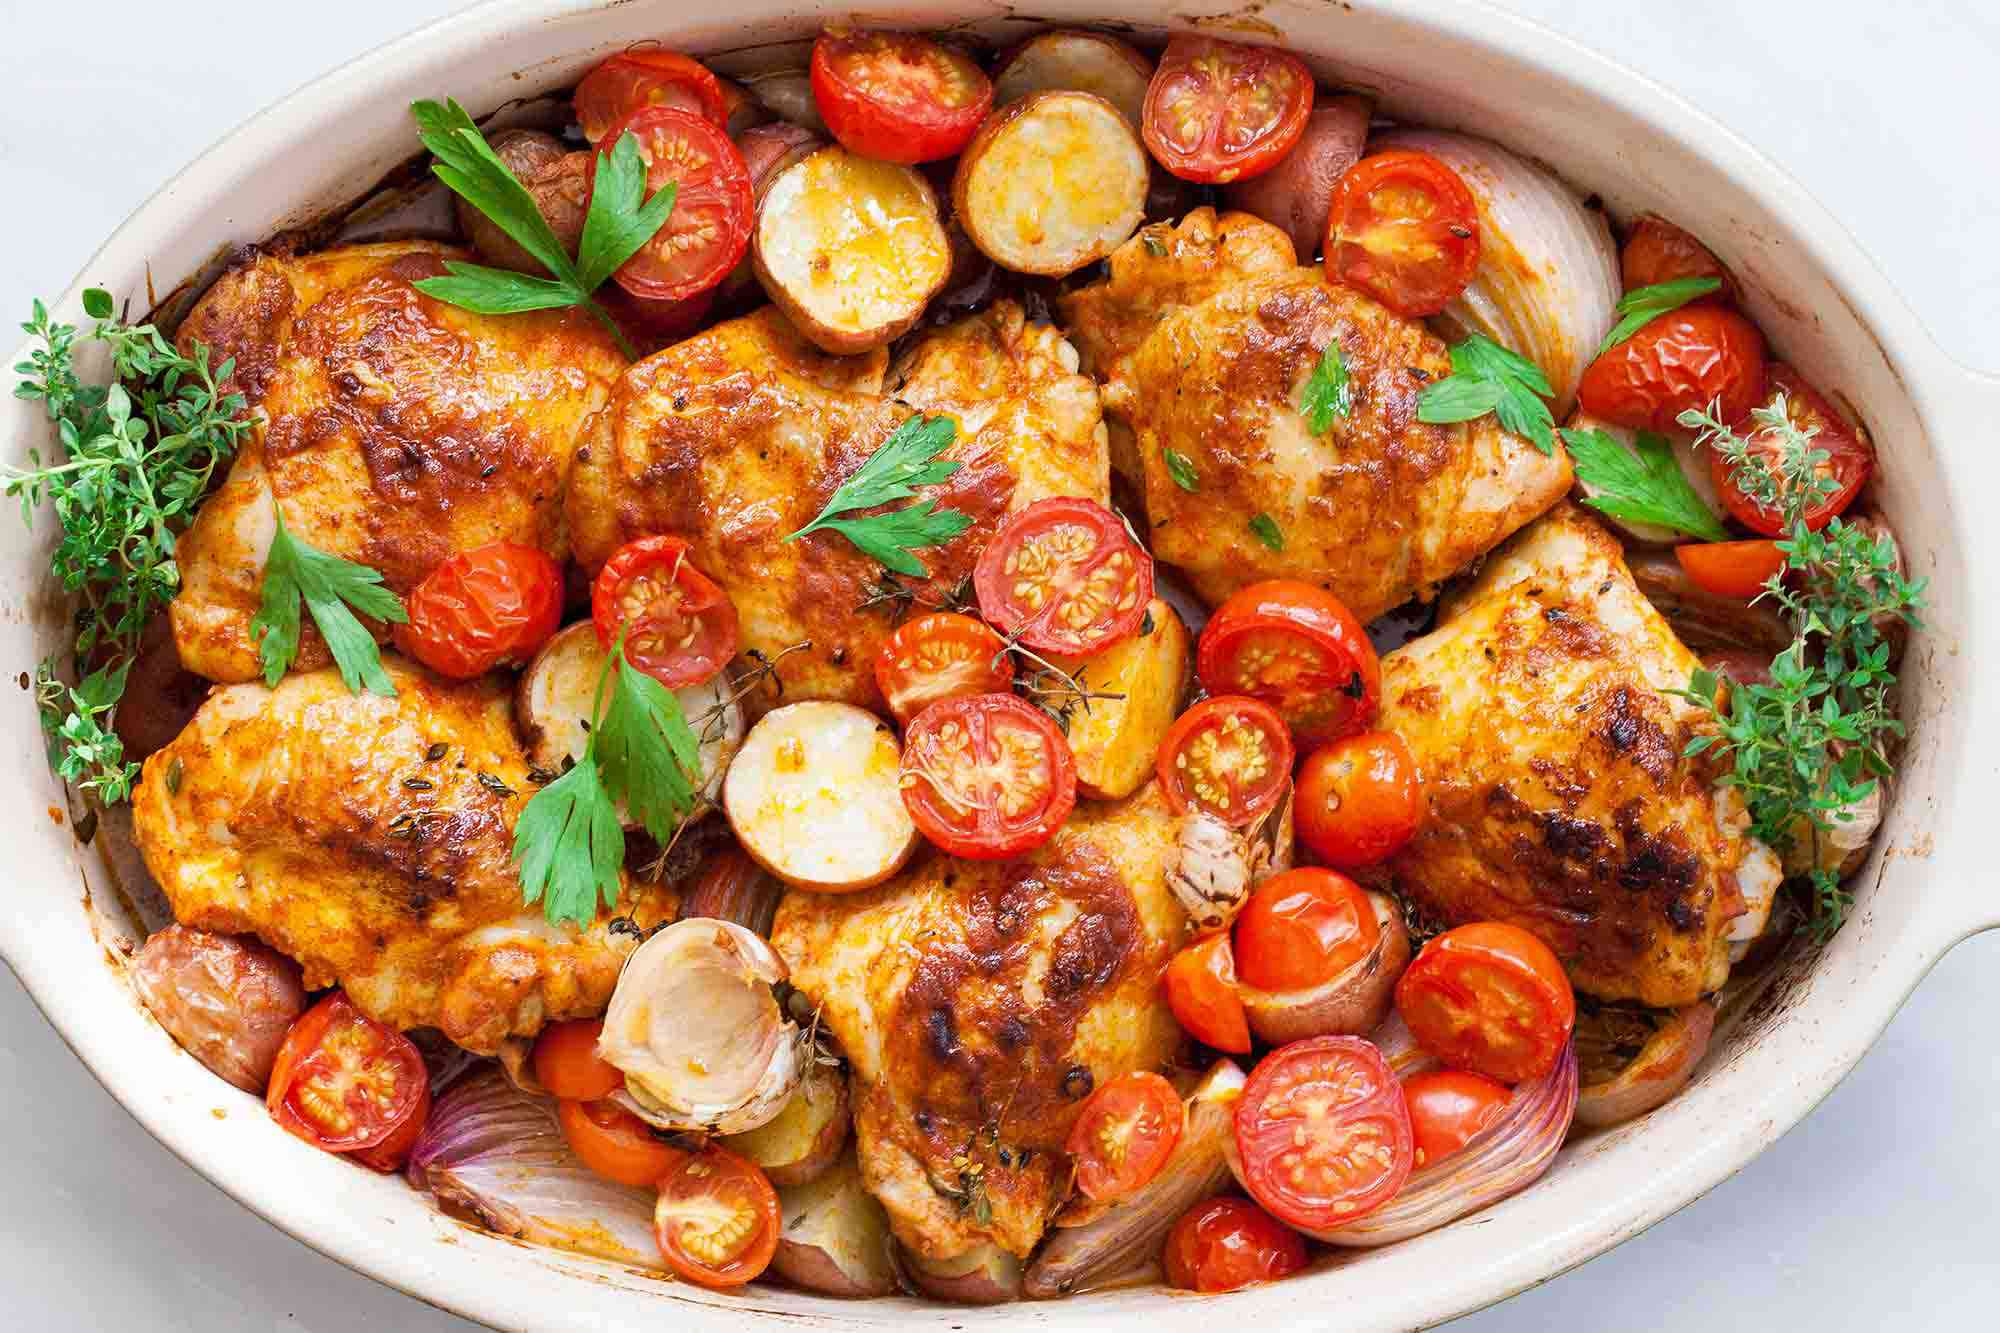 Paprika Chicken and Potatoes with Tomatoes horizontal in a baking dish